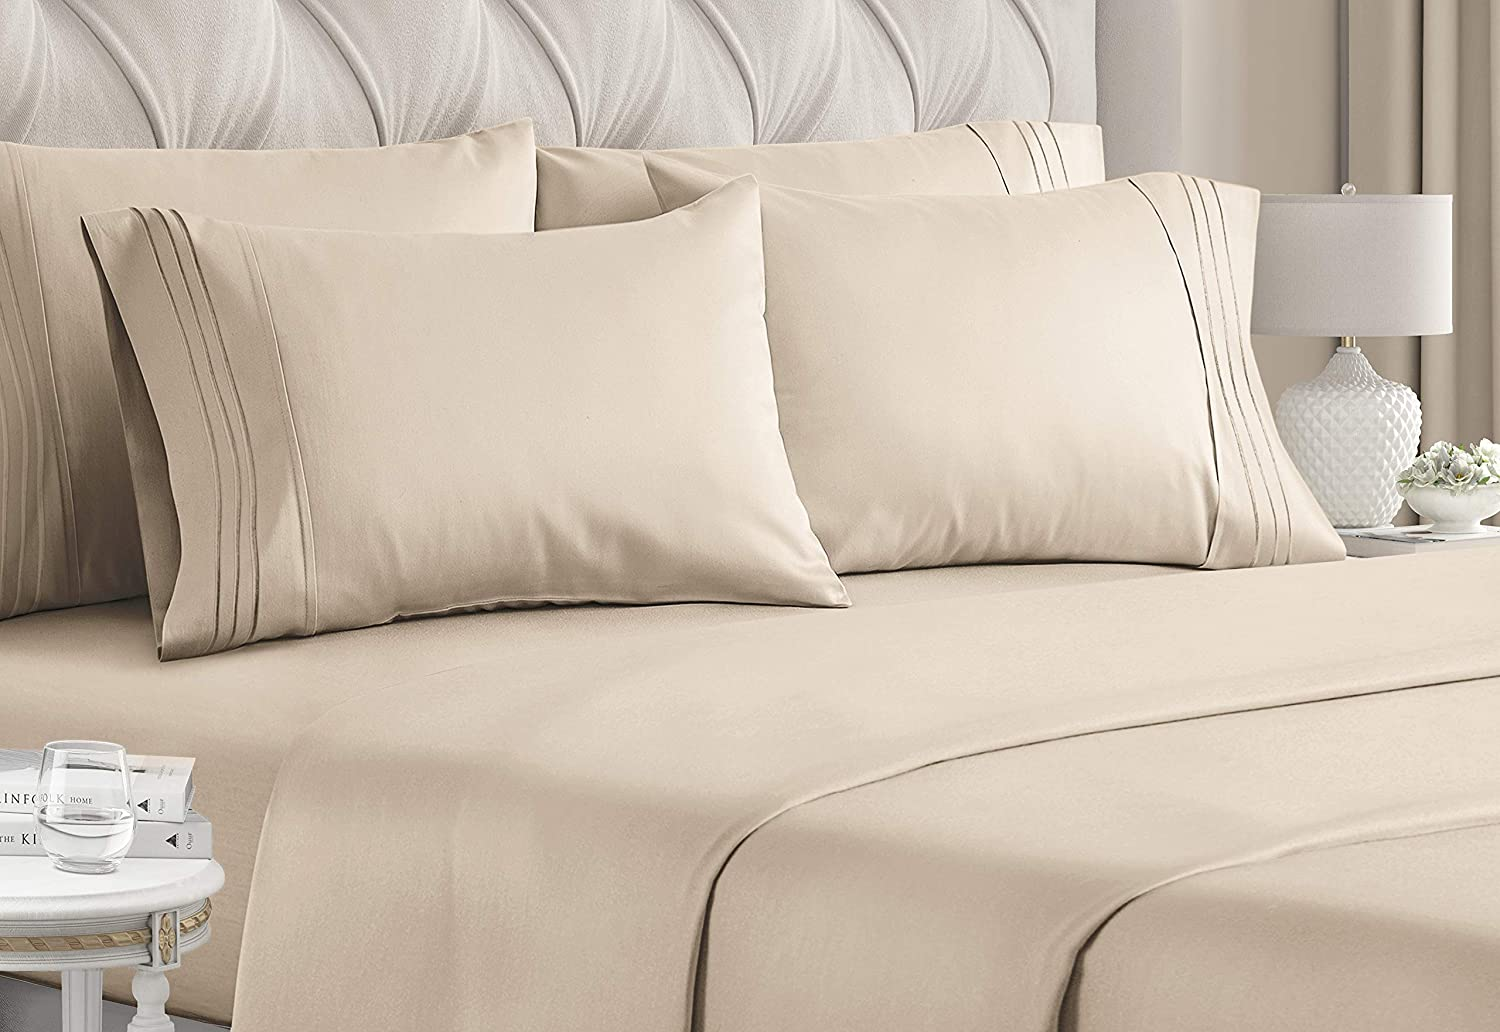 Full Size Sheet Set - 6 Piece Set - Hotel Luxury Bed Sheets - Extra Soft - Deep Pockets - Easy Fit - Breathable & Cooling Sheets - Wrinkle Free - Comfy - Cream Bed Sheets - Fulls Sheets - 6 PC